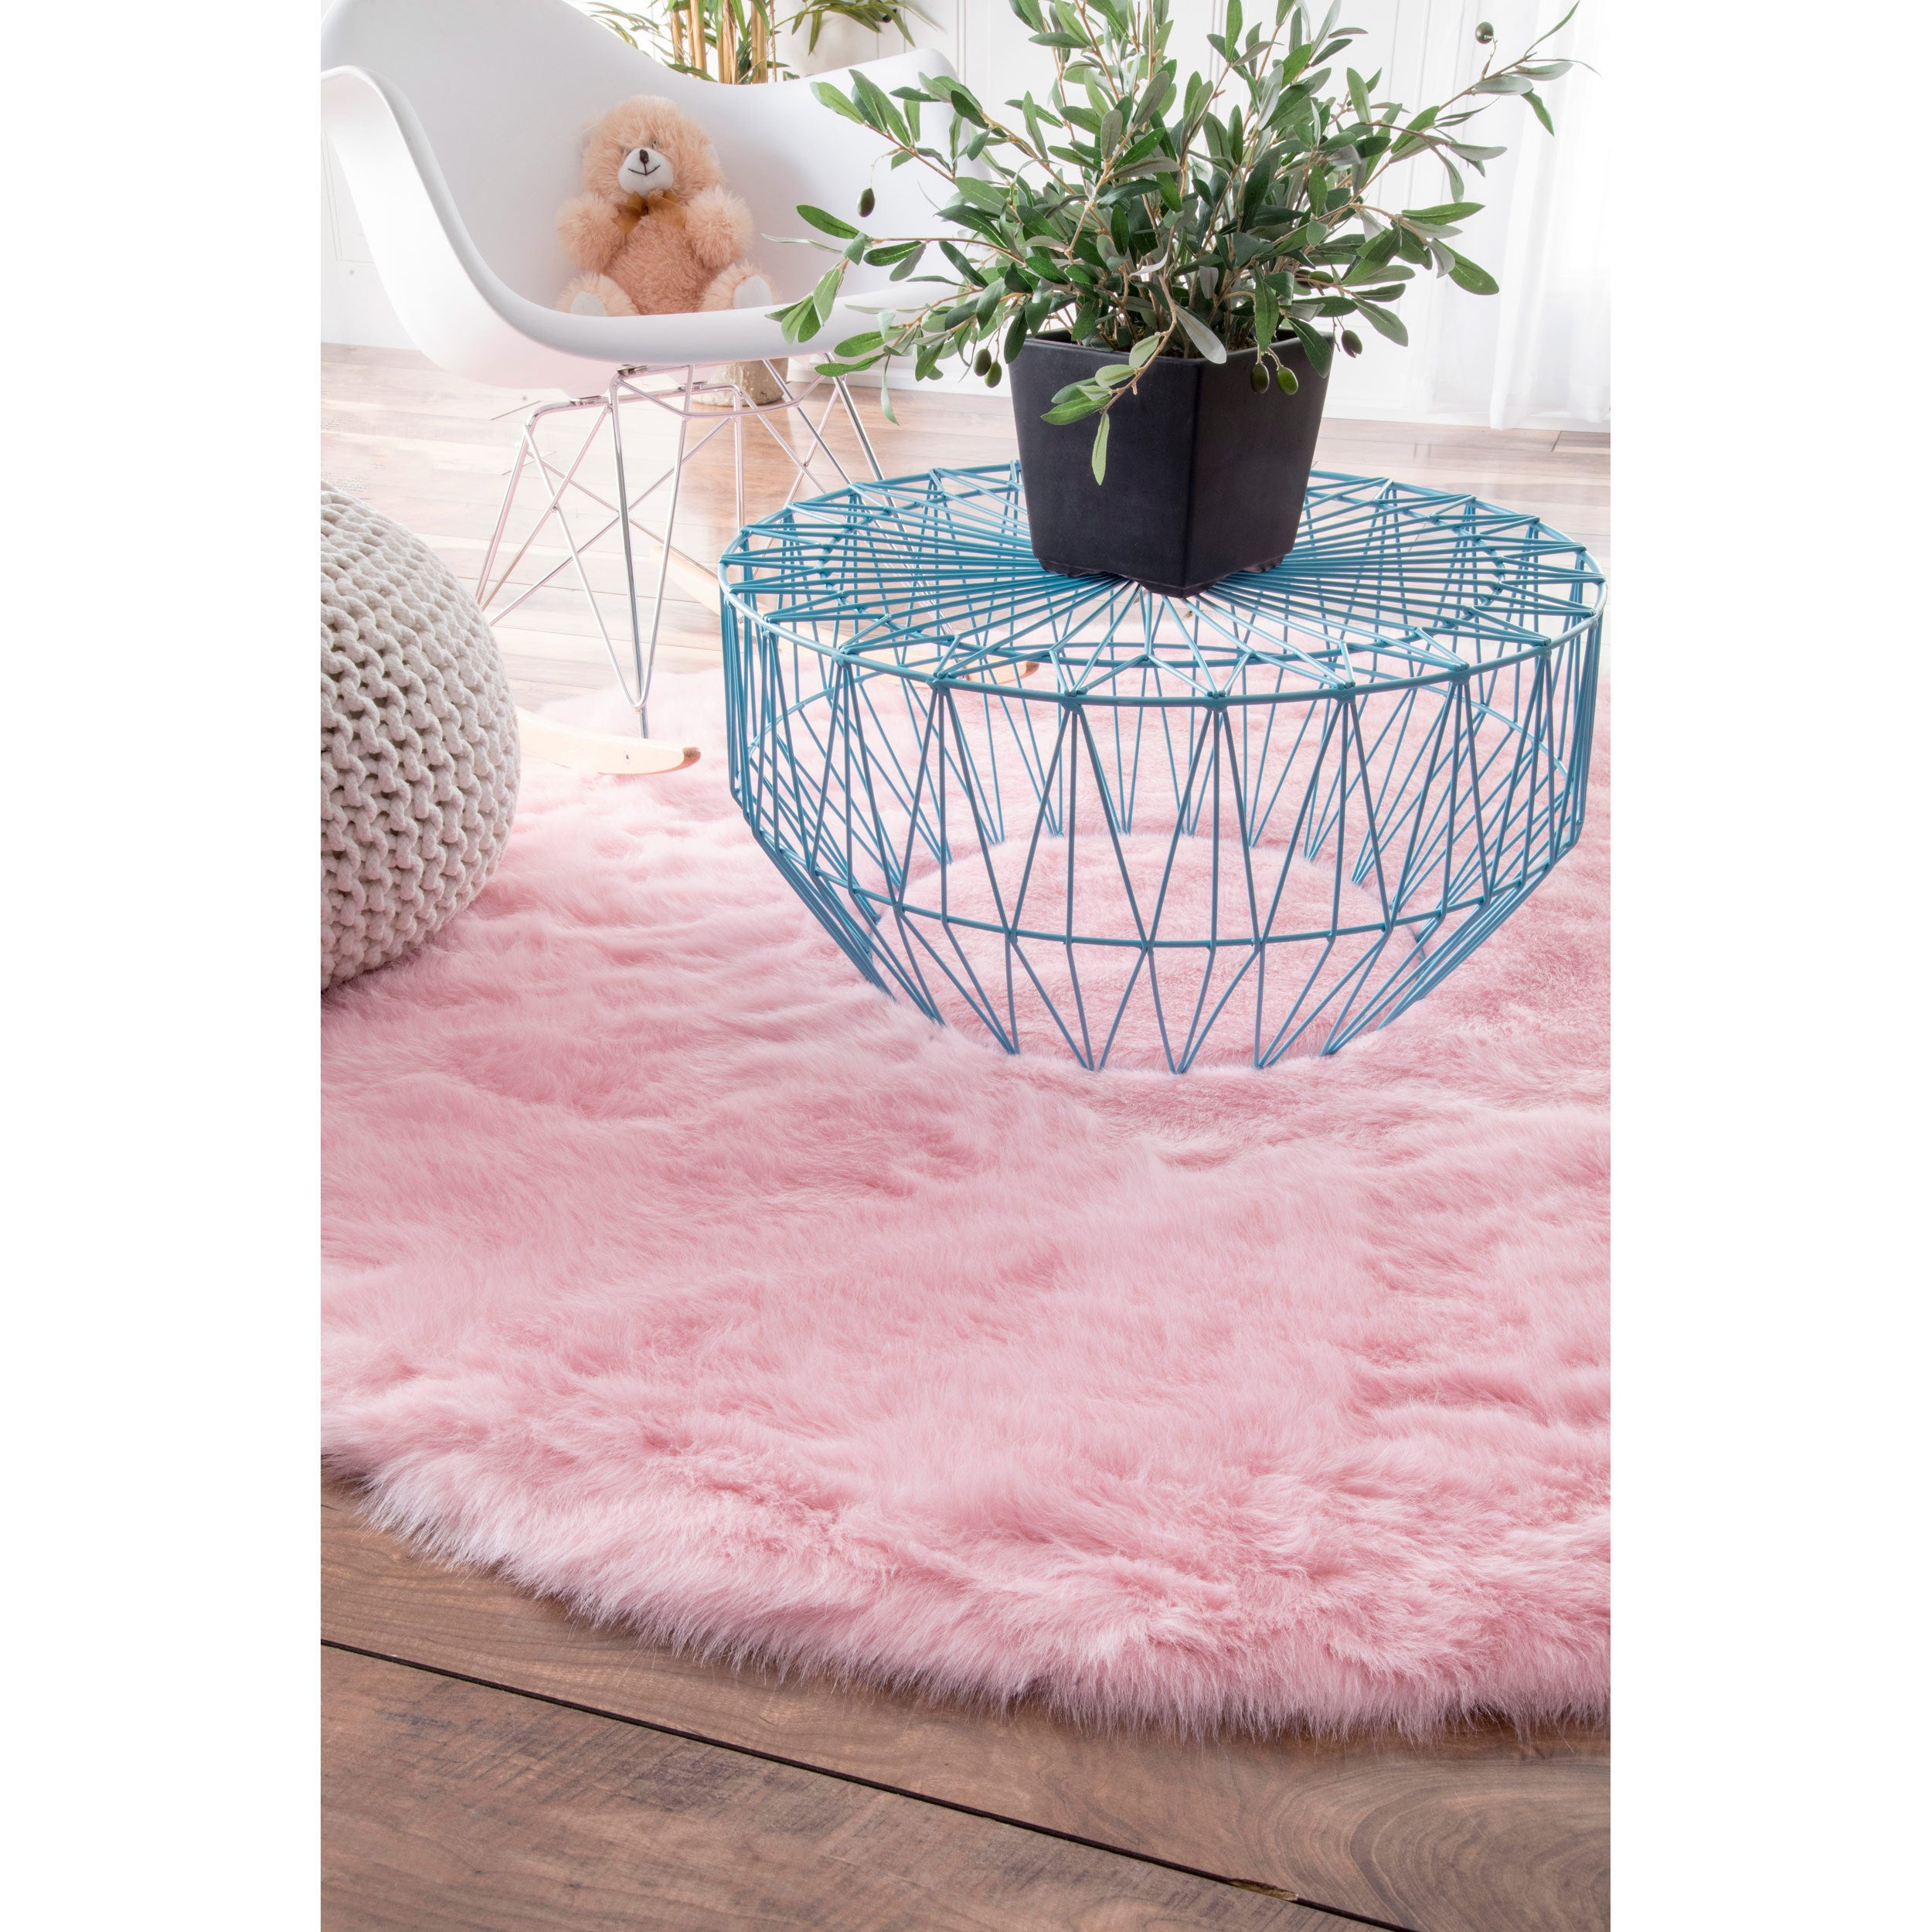 rio manly solid nursery area pink bliss rectangle majestic round rugs super soft adorable for rug flokati shag is x to review safavieh this exquisite zq